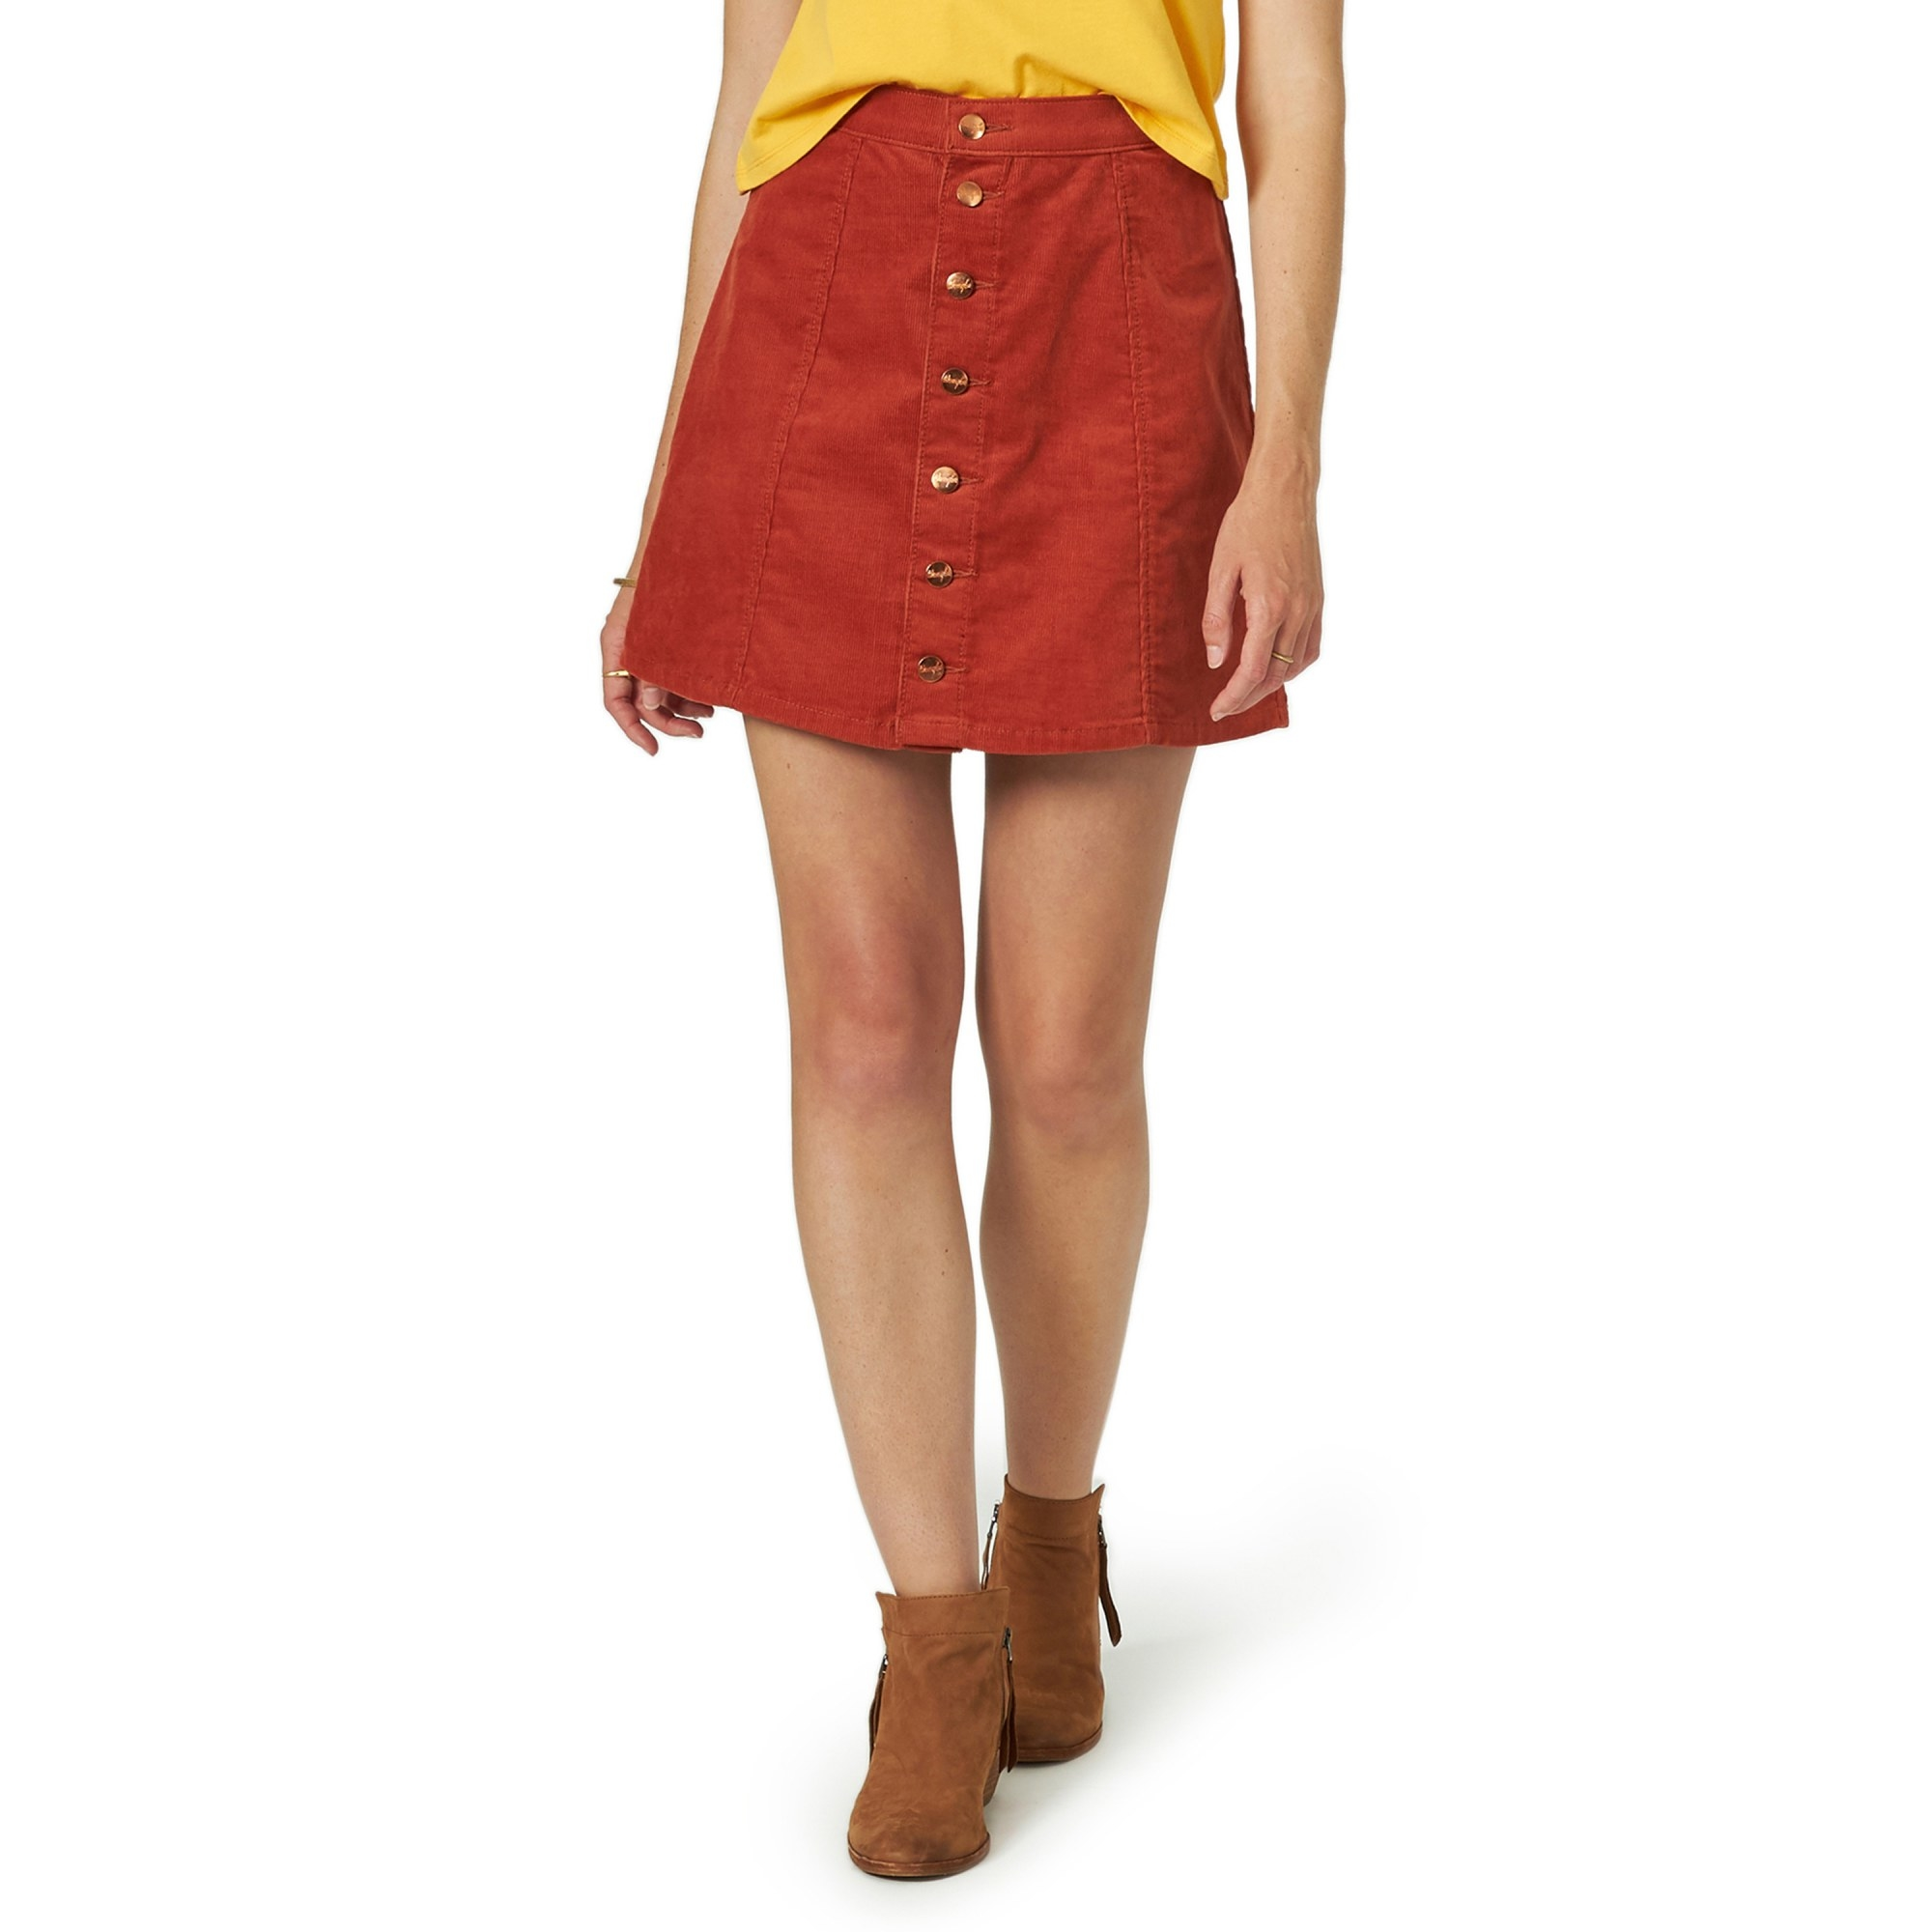 The button-down red skirt